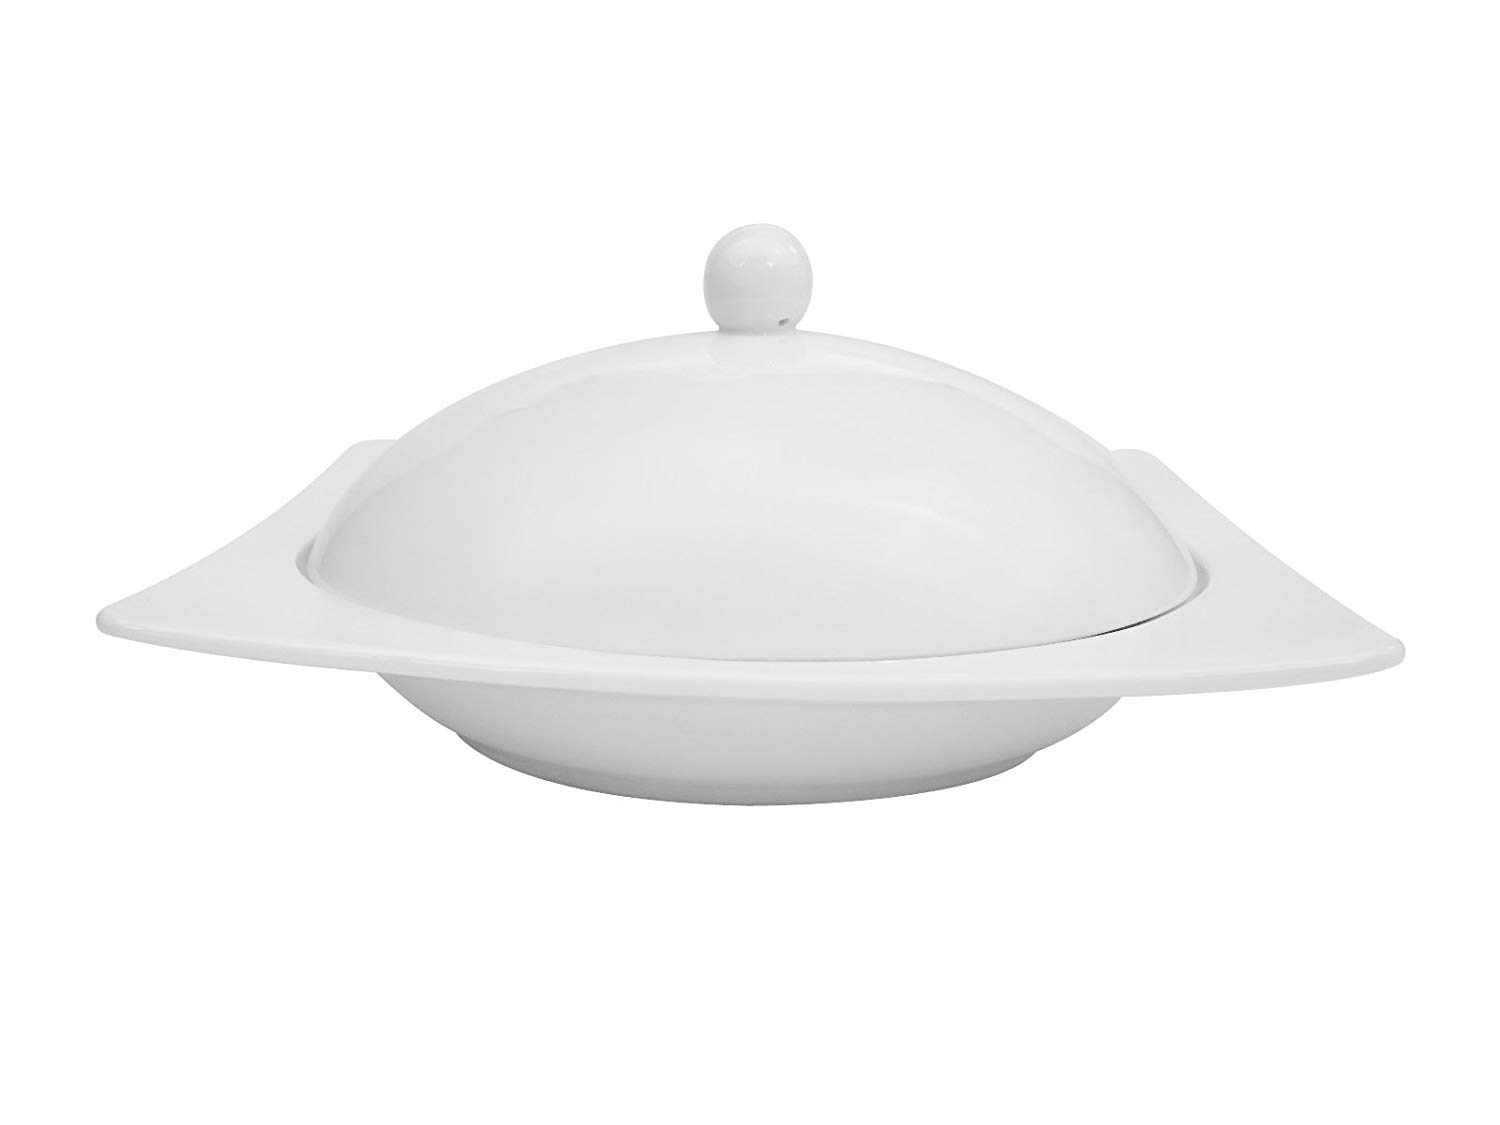 CAC China KSE-208 Kingsquare 8-Inch by 6-7/8-Inch by 1-1/2-Inch 10-Ounce Super White Porcelain Square Pasta Bowl with Lid, Box of 8